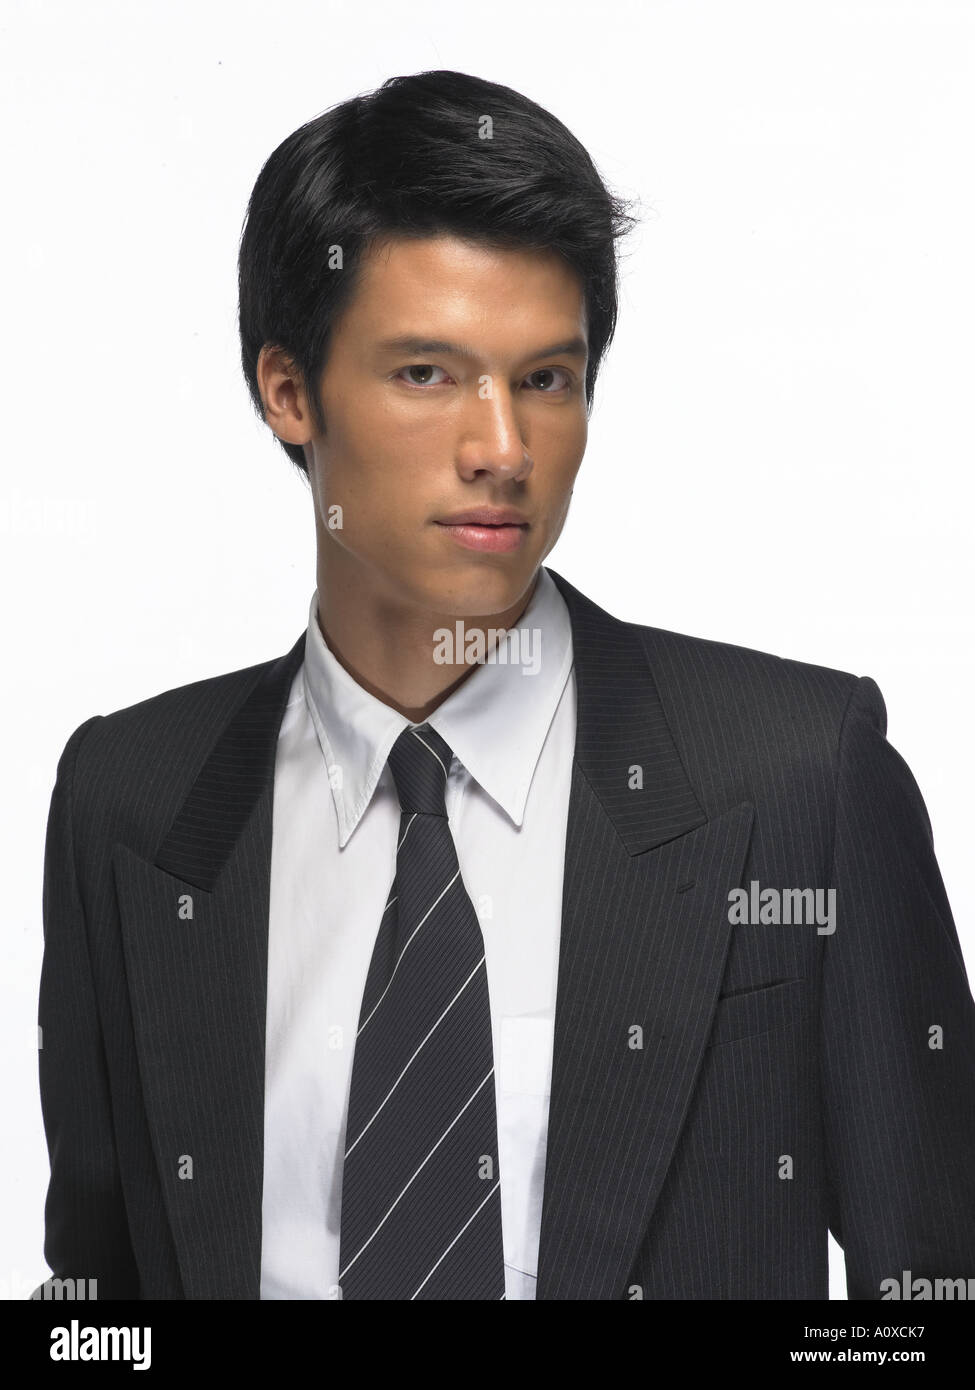 a portrait of young bussiness man - Stock Image